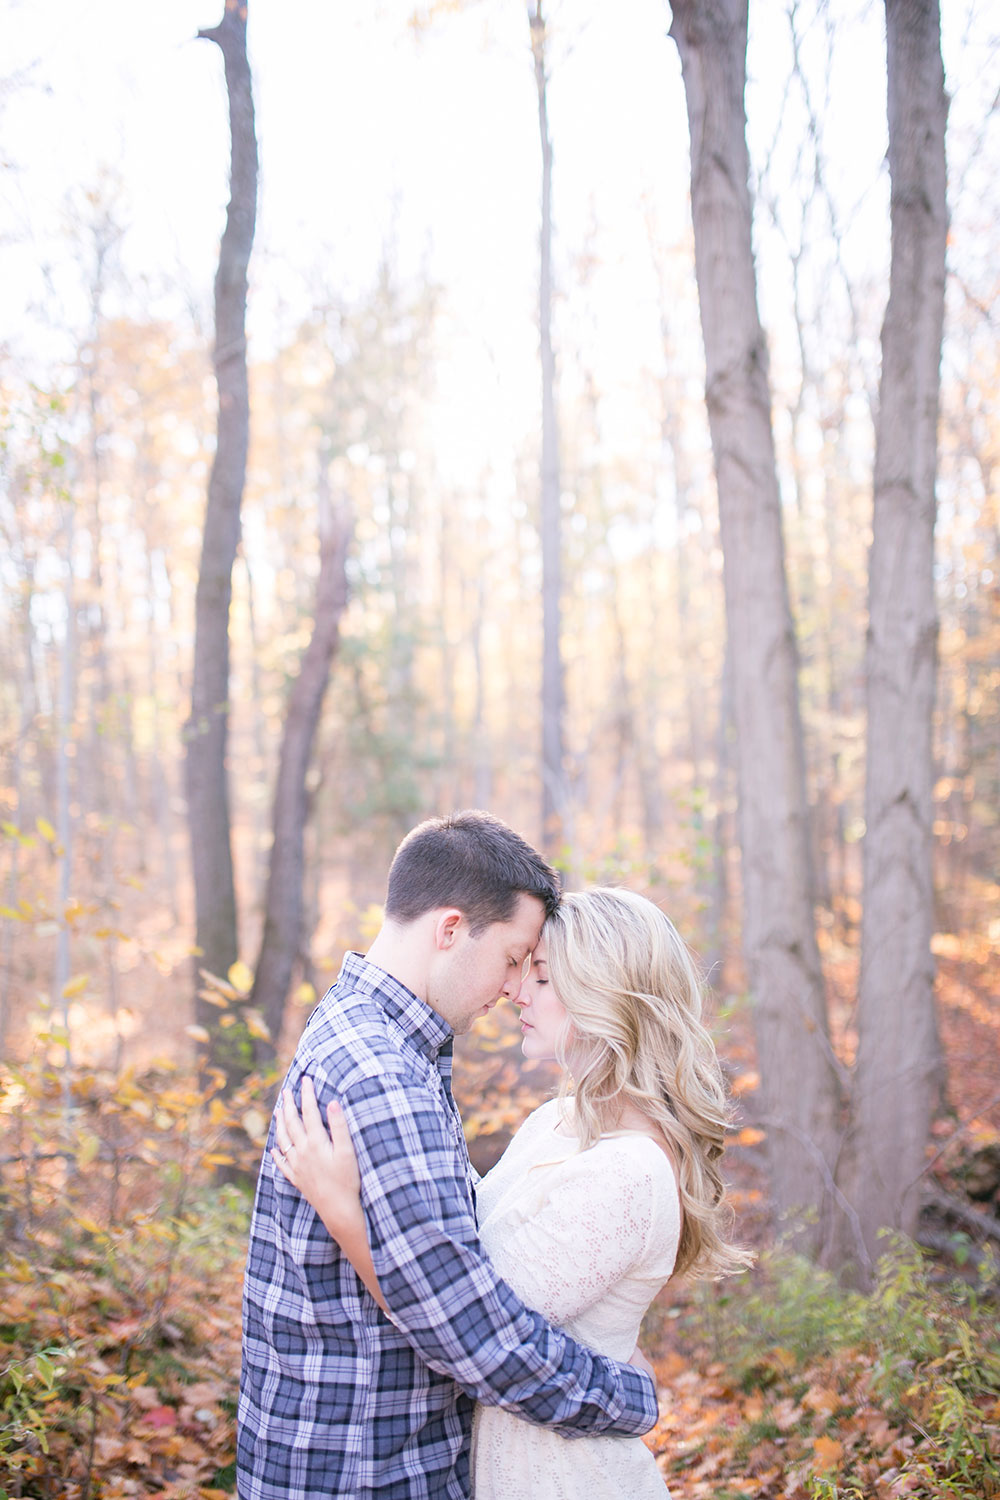 Albion-Hills-Conservation-Park-engagement-session-caledon-photo-by-philosophy-studios-eva-derrick-photography-001.jpg